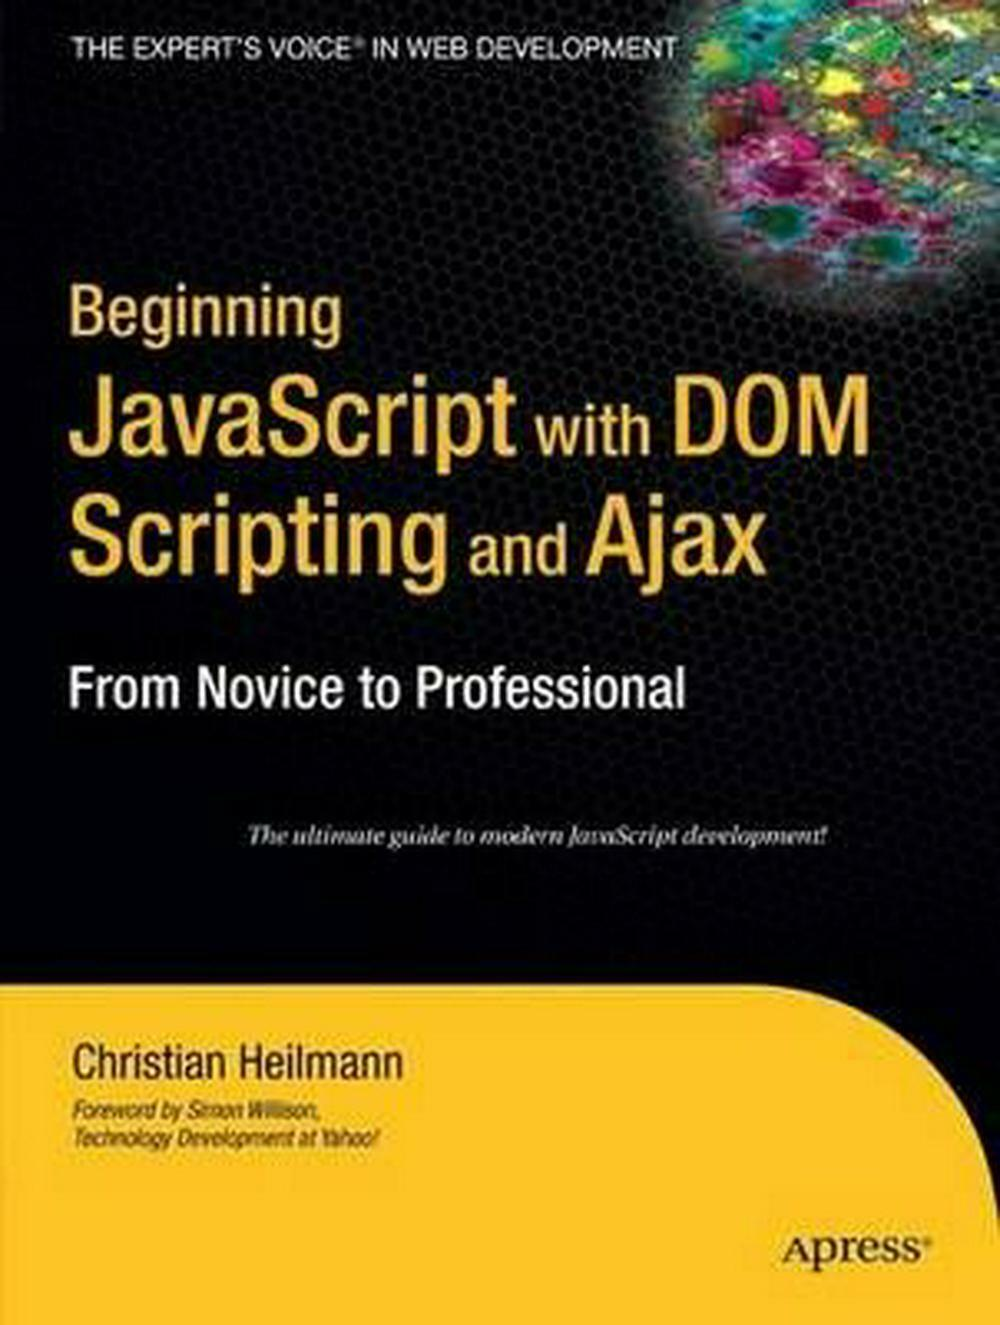 Beginning JavaScript with Dom Scripting and Ajax: From Novice to Professional by |